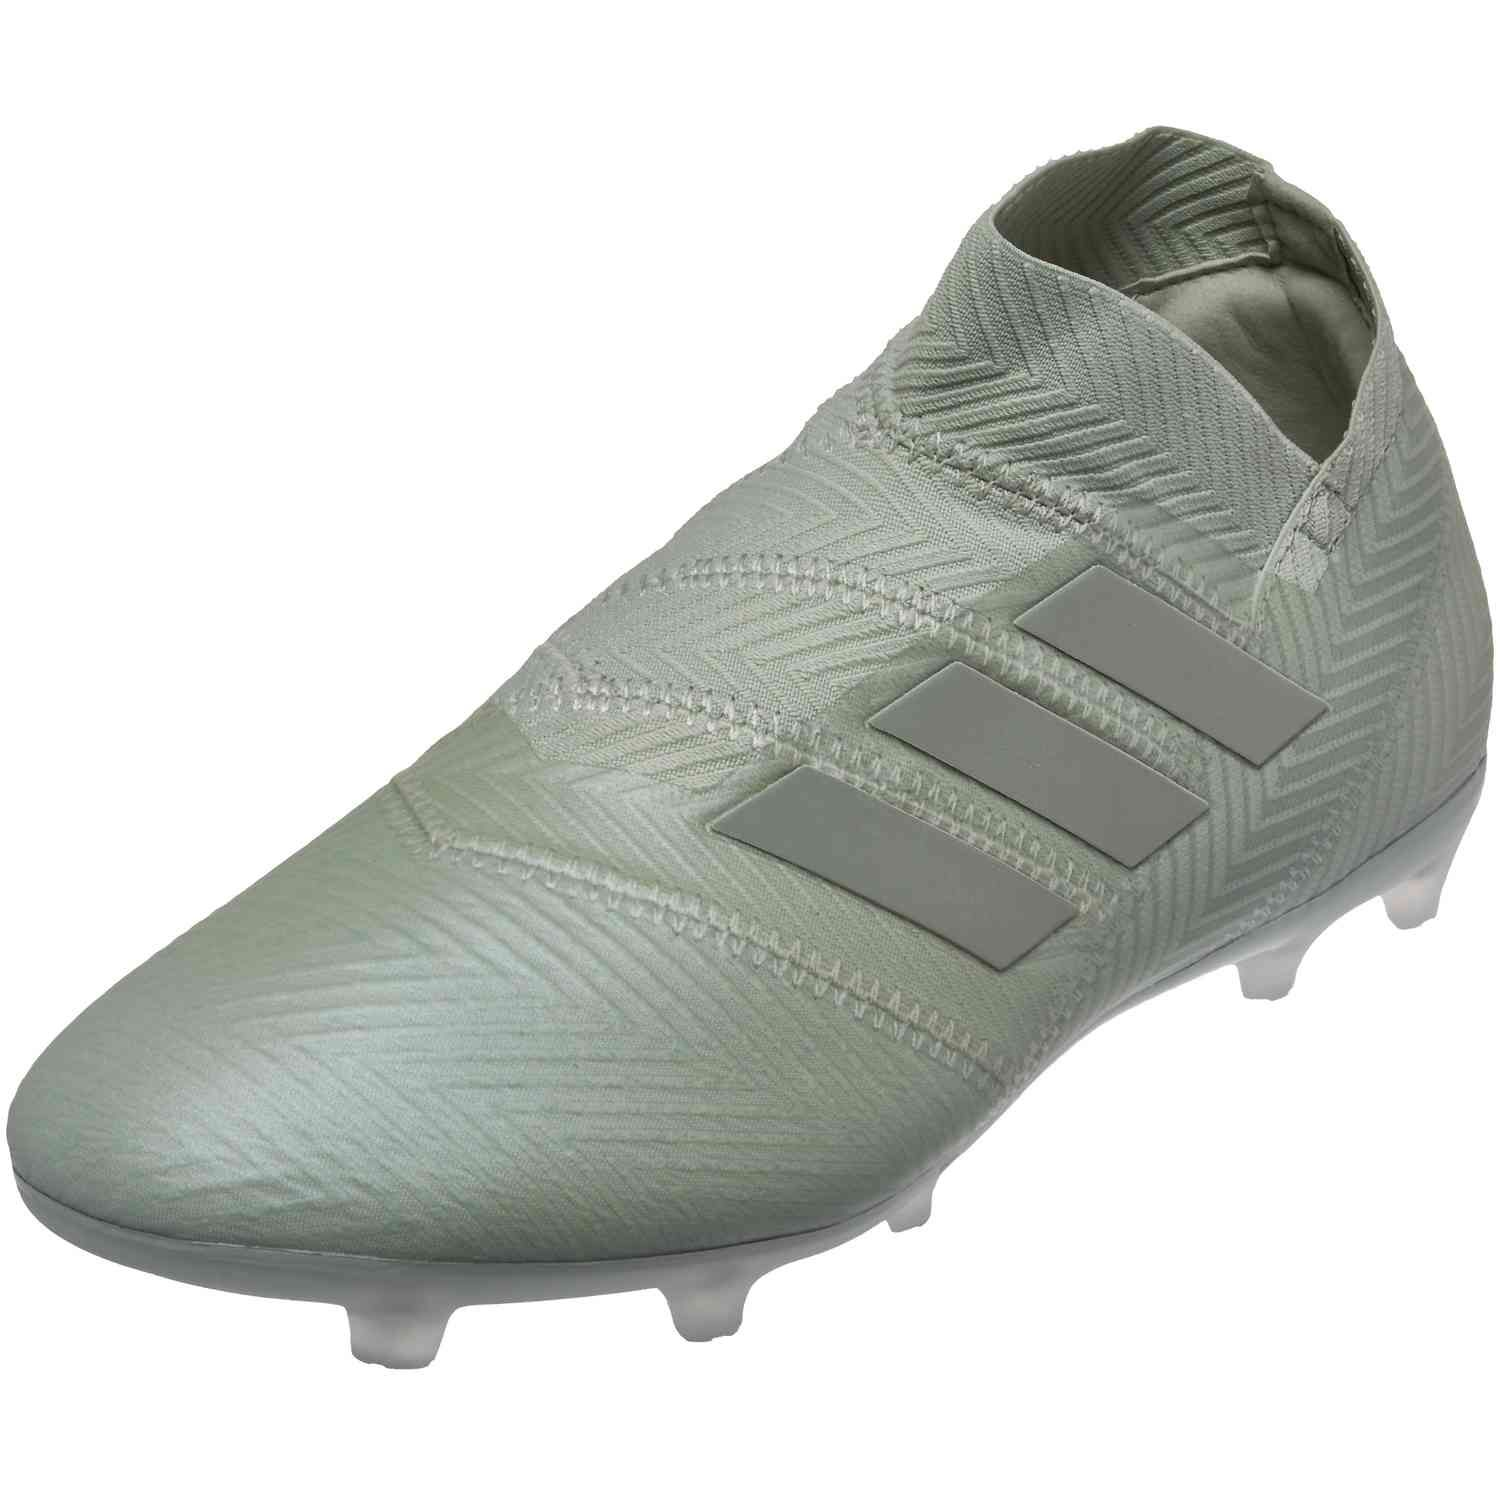 90dd97f9a Buy the Spectral Mode pack Kids adidas Nemeziz 18+ shoes from SoccerPro